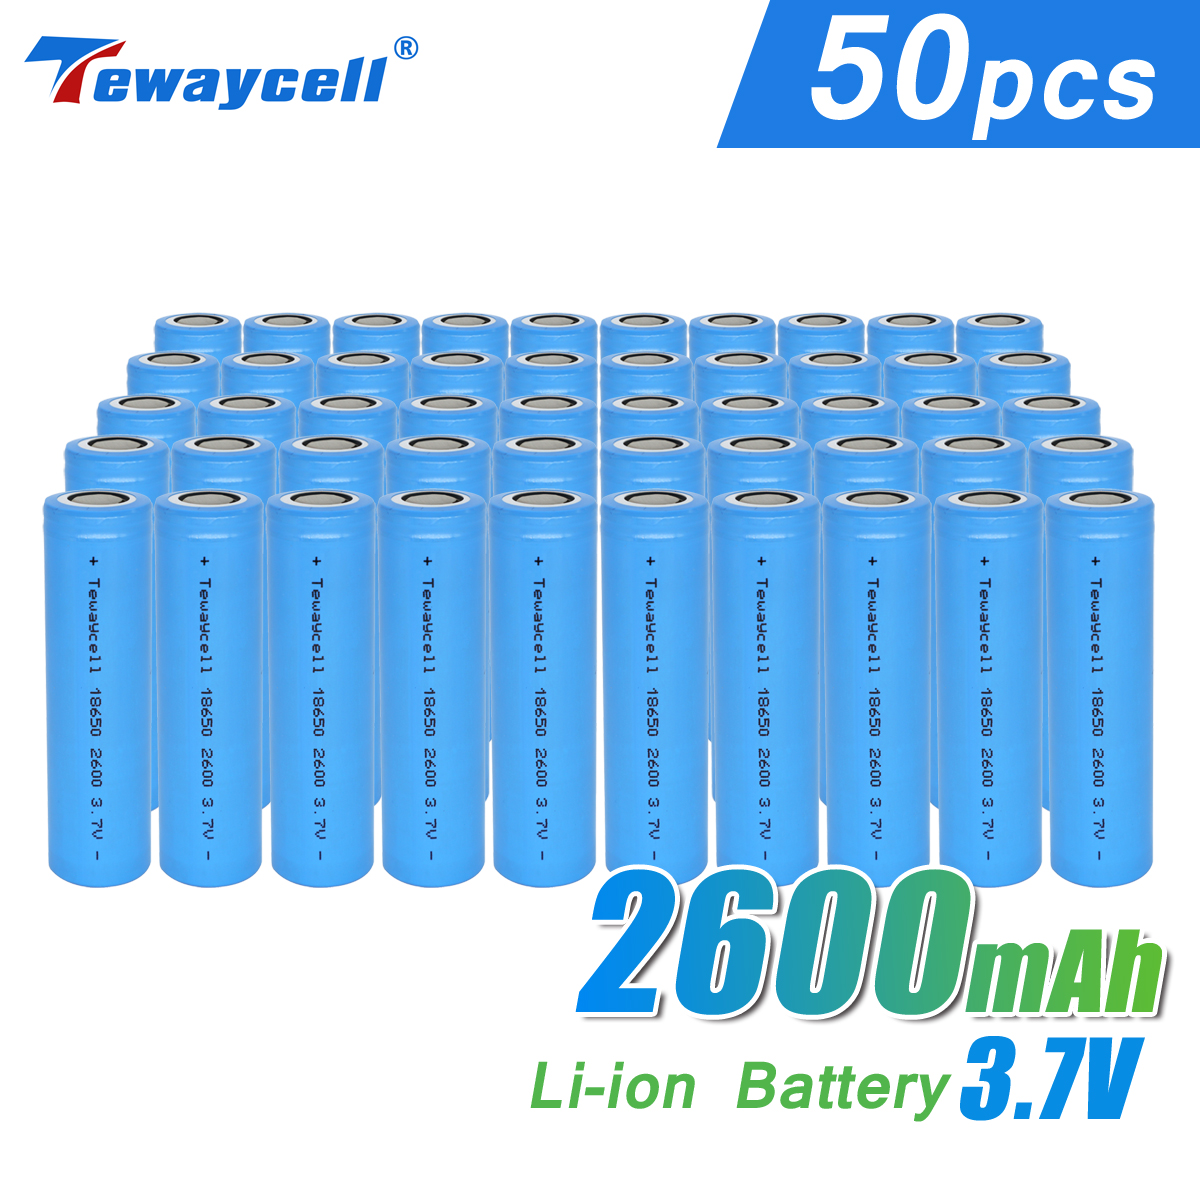 Hot Selling 50pcs per lot carton ICR 18650 3.7v 2600mah lithium li-ion batteries for electric tools free shipping